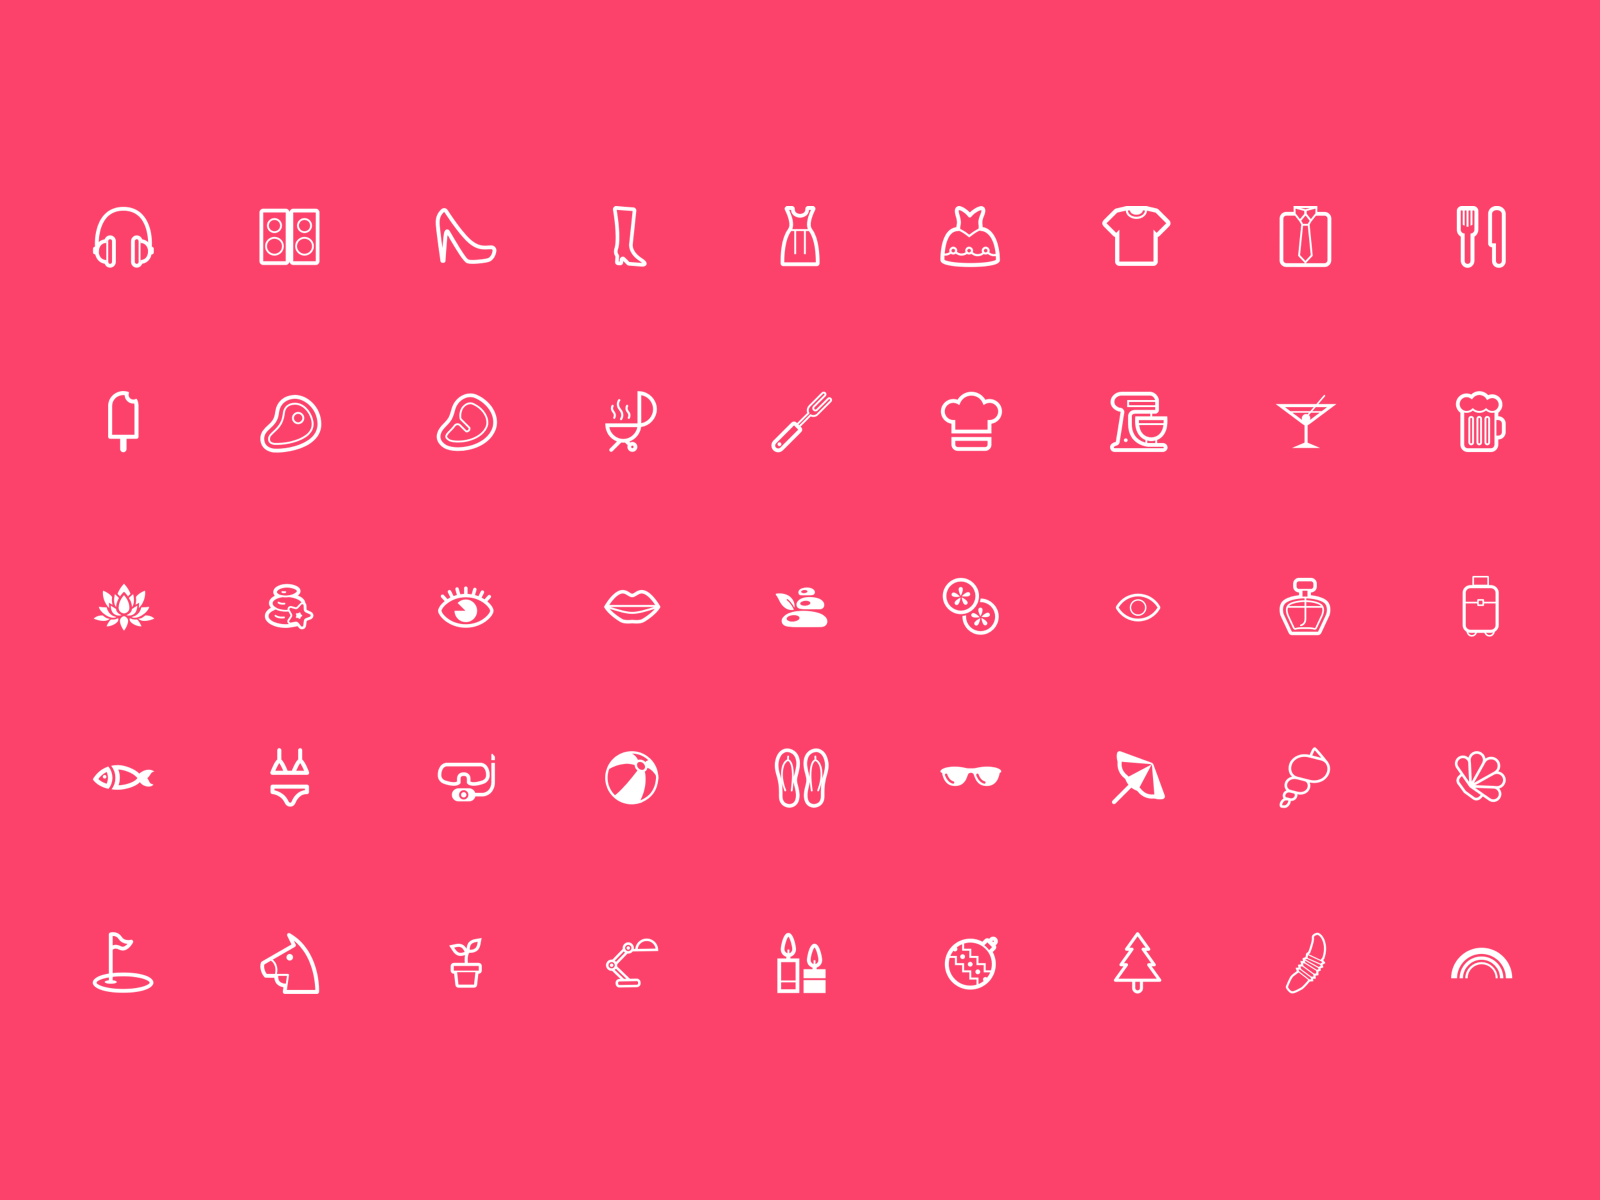 icons-visual.png